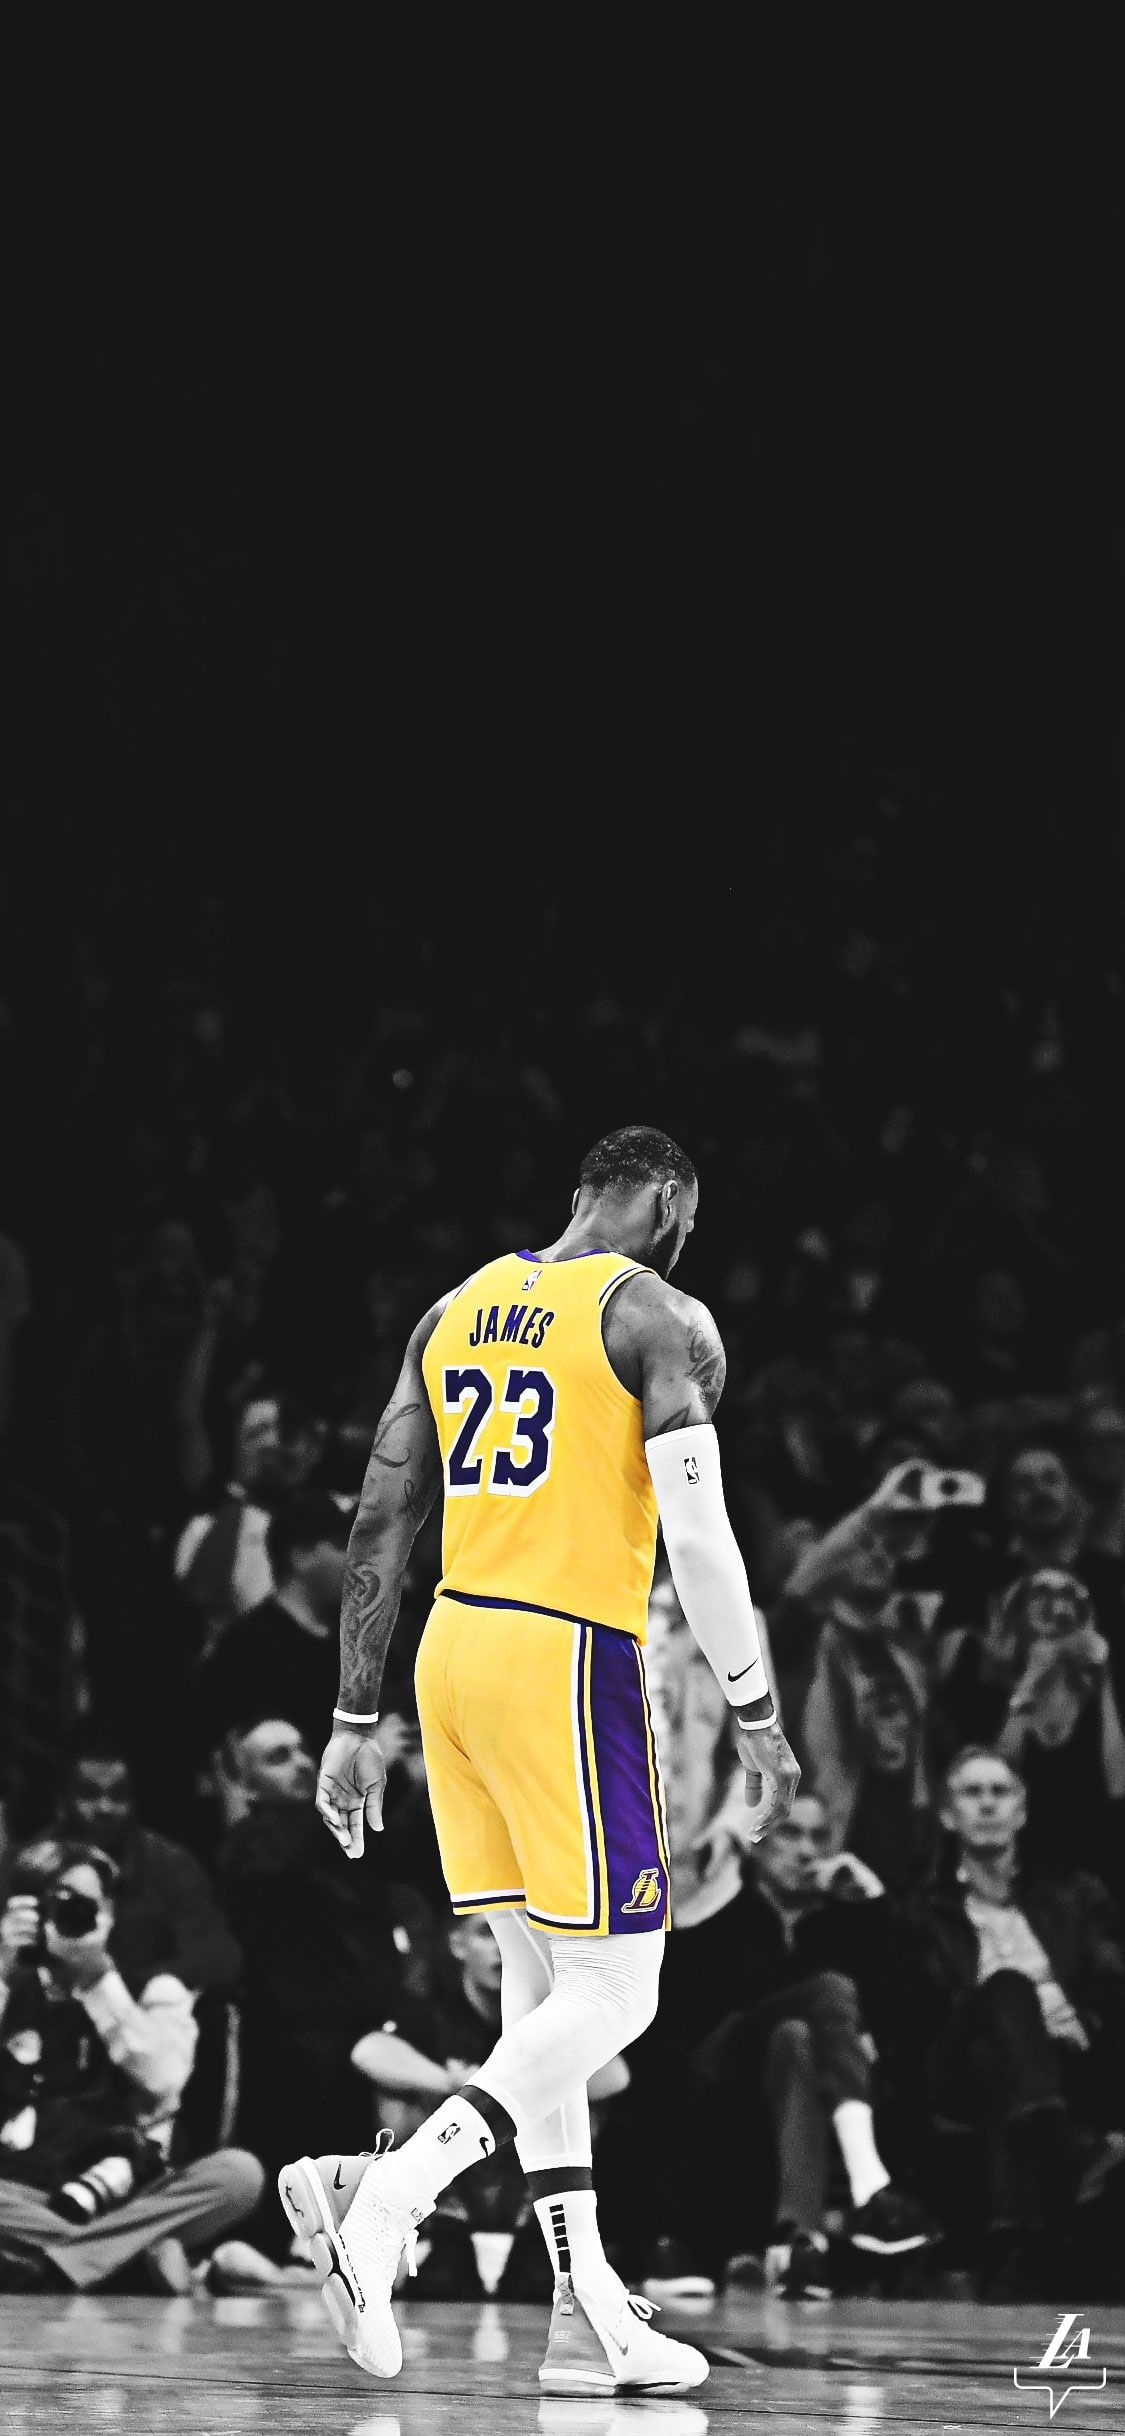 Nba Phone Wallpapers Top Free Nba Phone Backgrounds